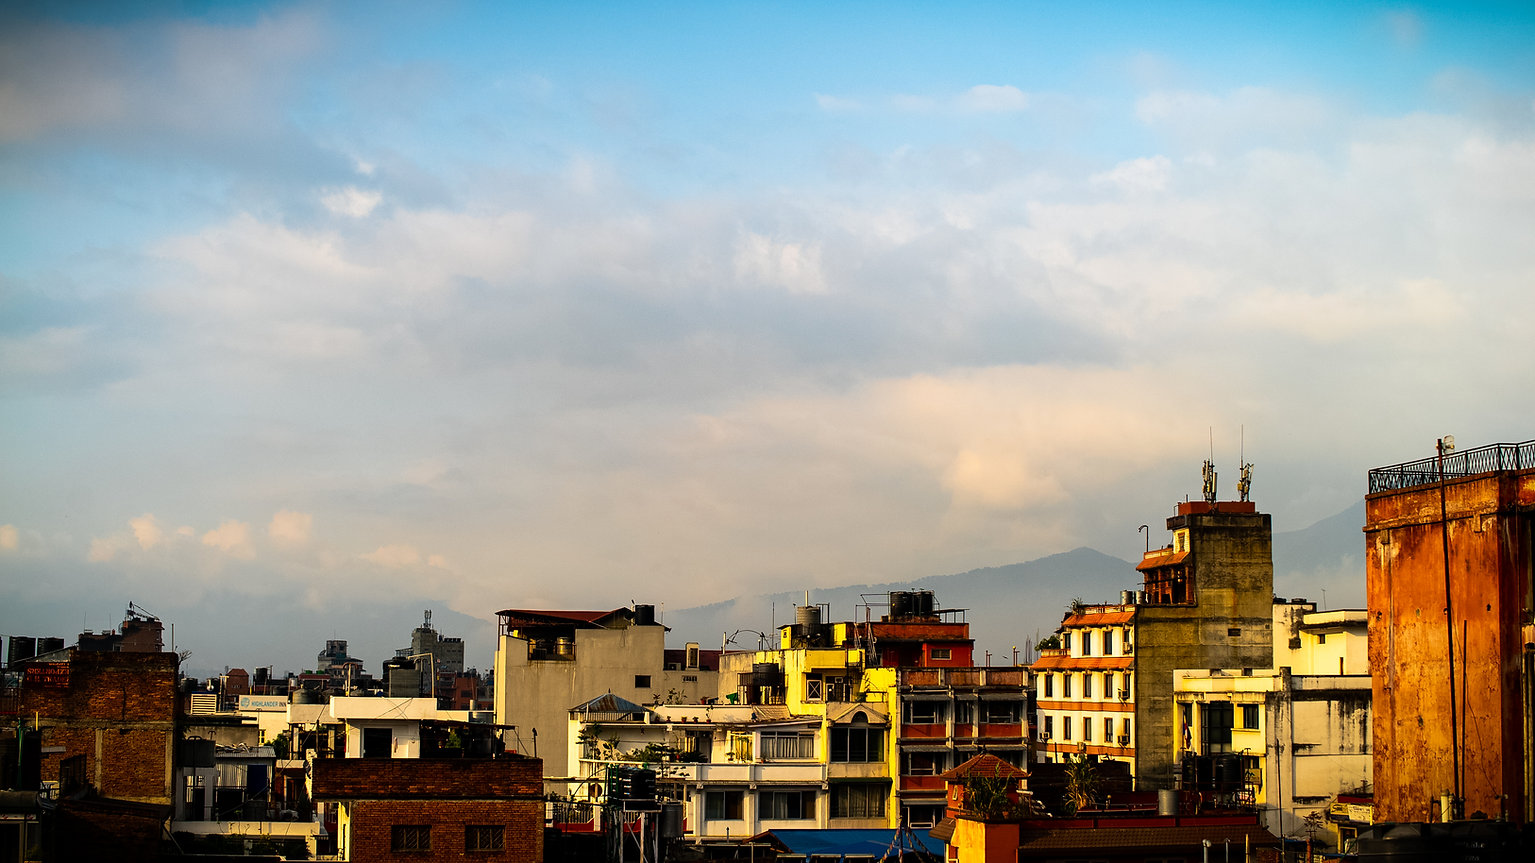 Ben Black_Kathmandu_From Hotel Festoon-0